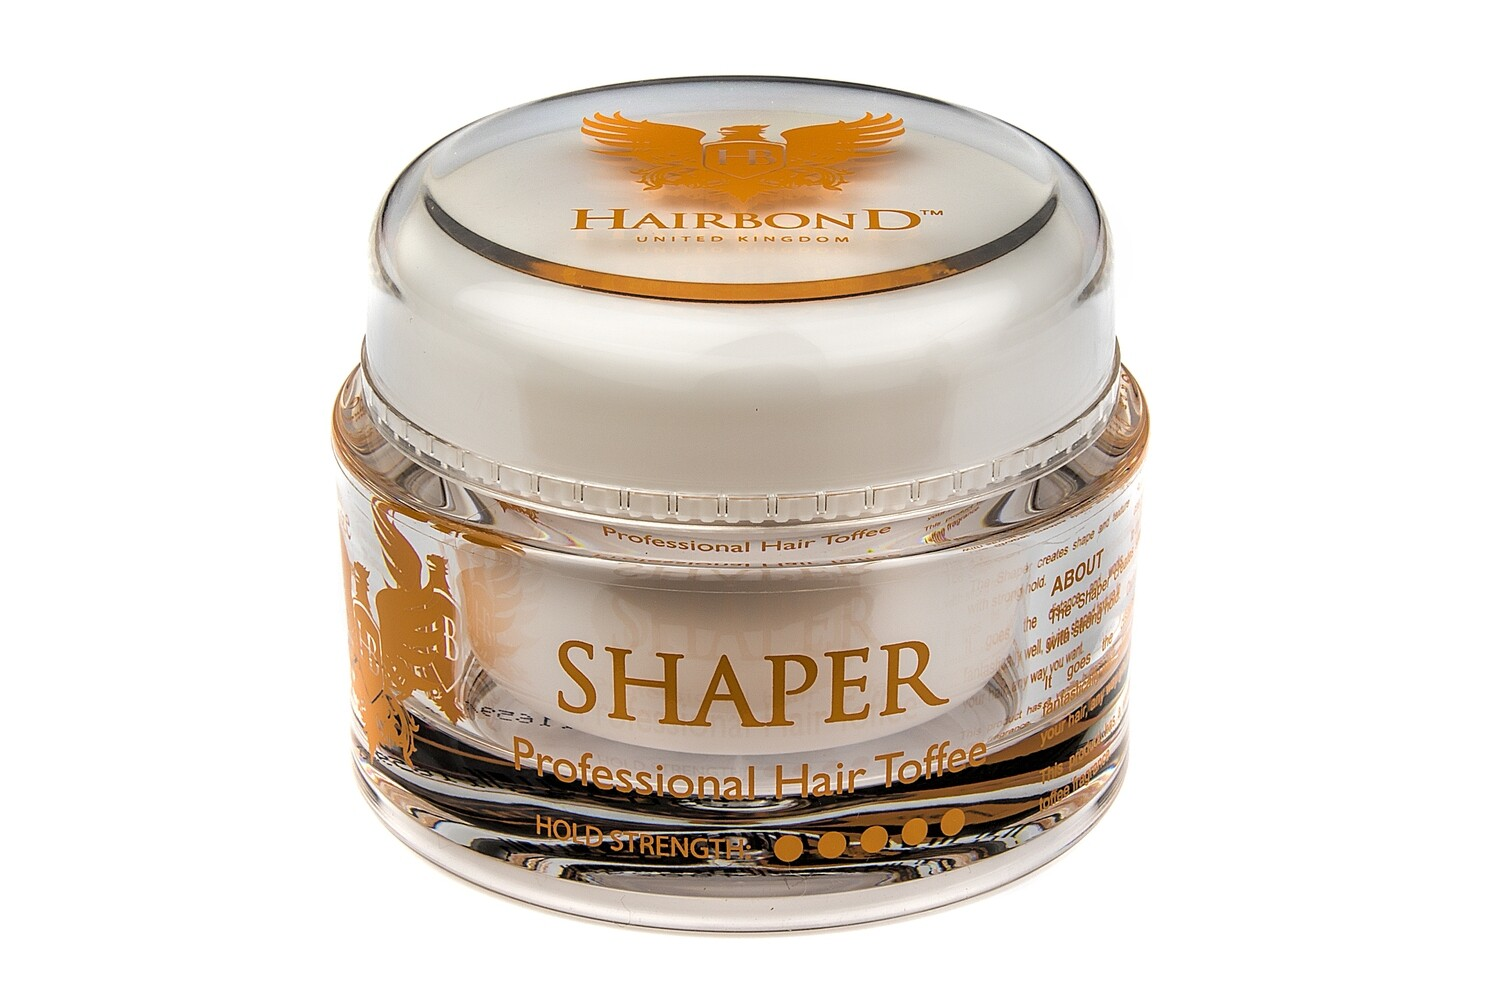 20 X Hairbond® Shaper Professional Hair Toffee 50ml